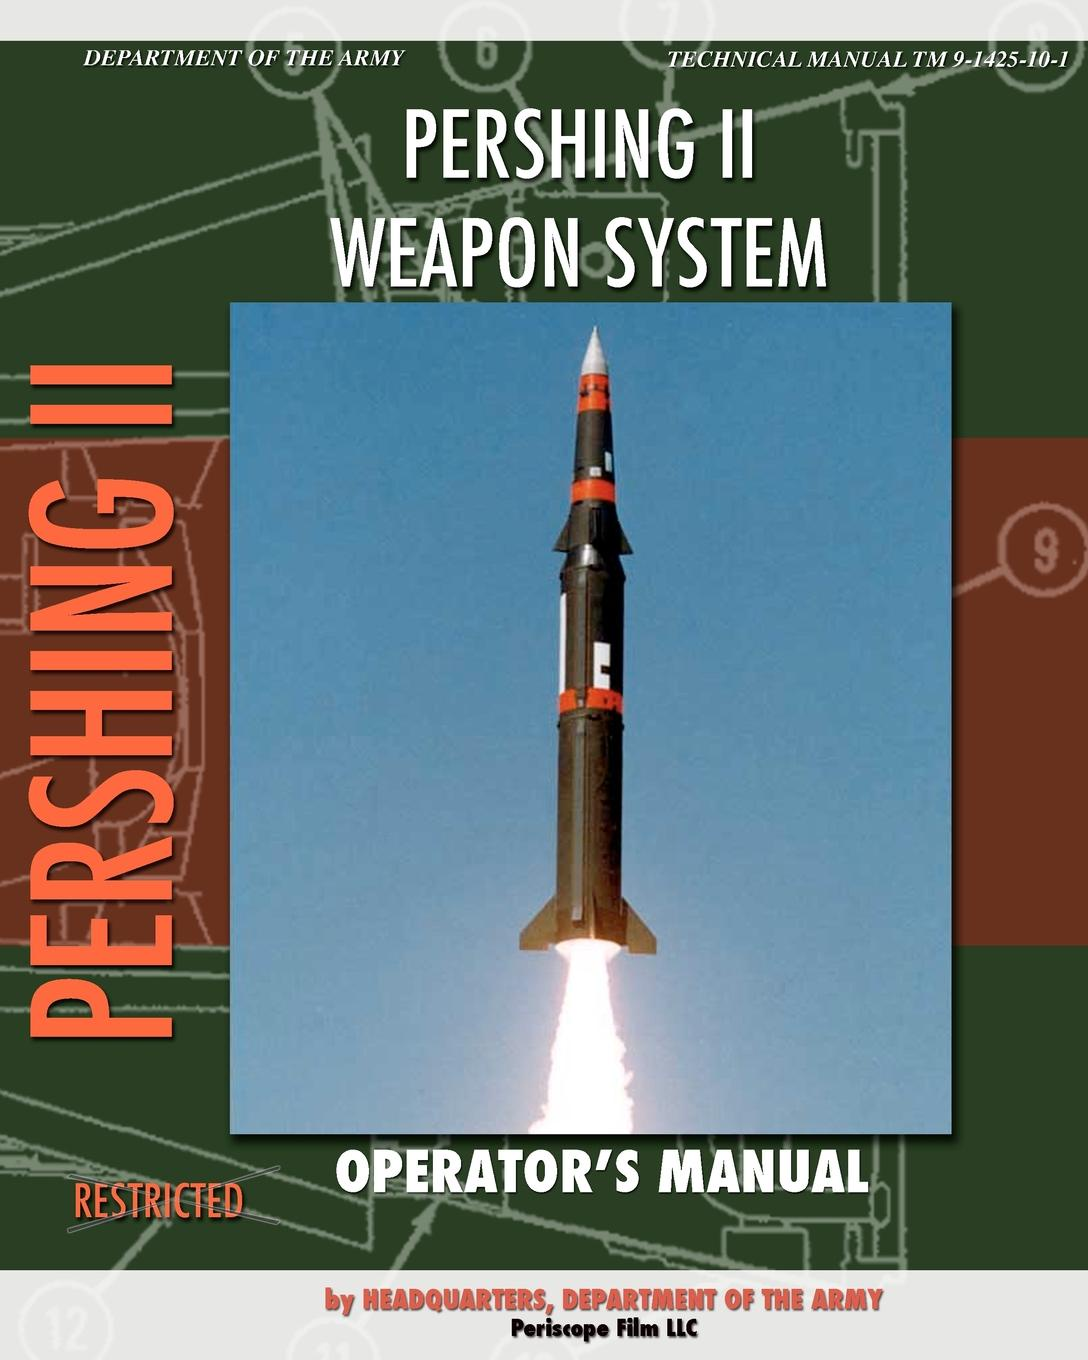 Headquarters Department of the Army Pershing II Weapon System Operator's Manual diane pershing the wish